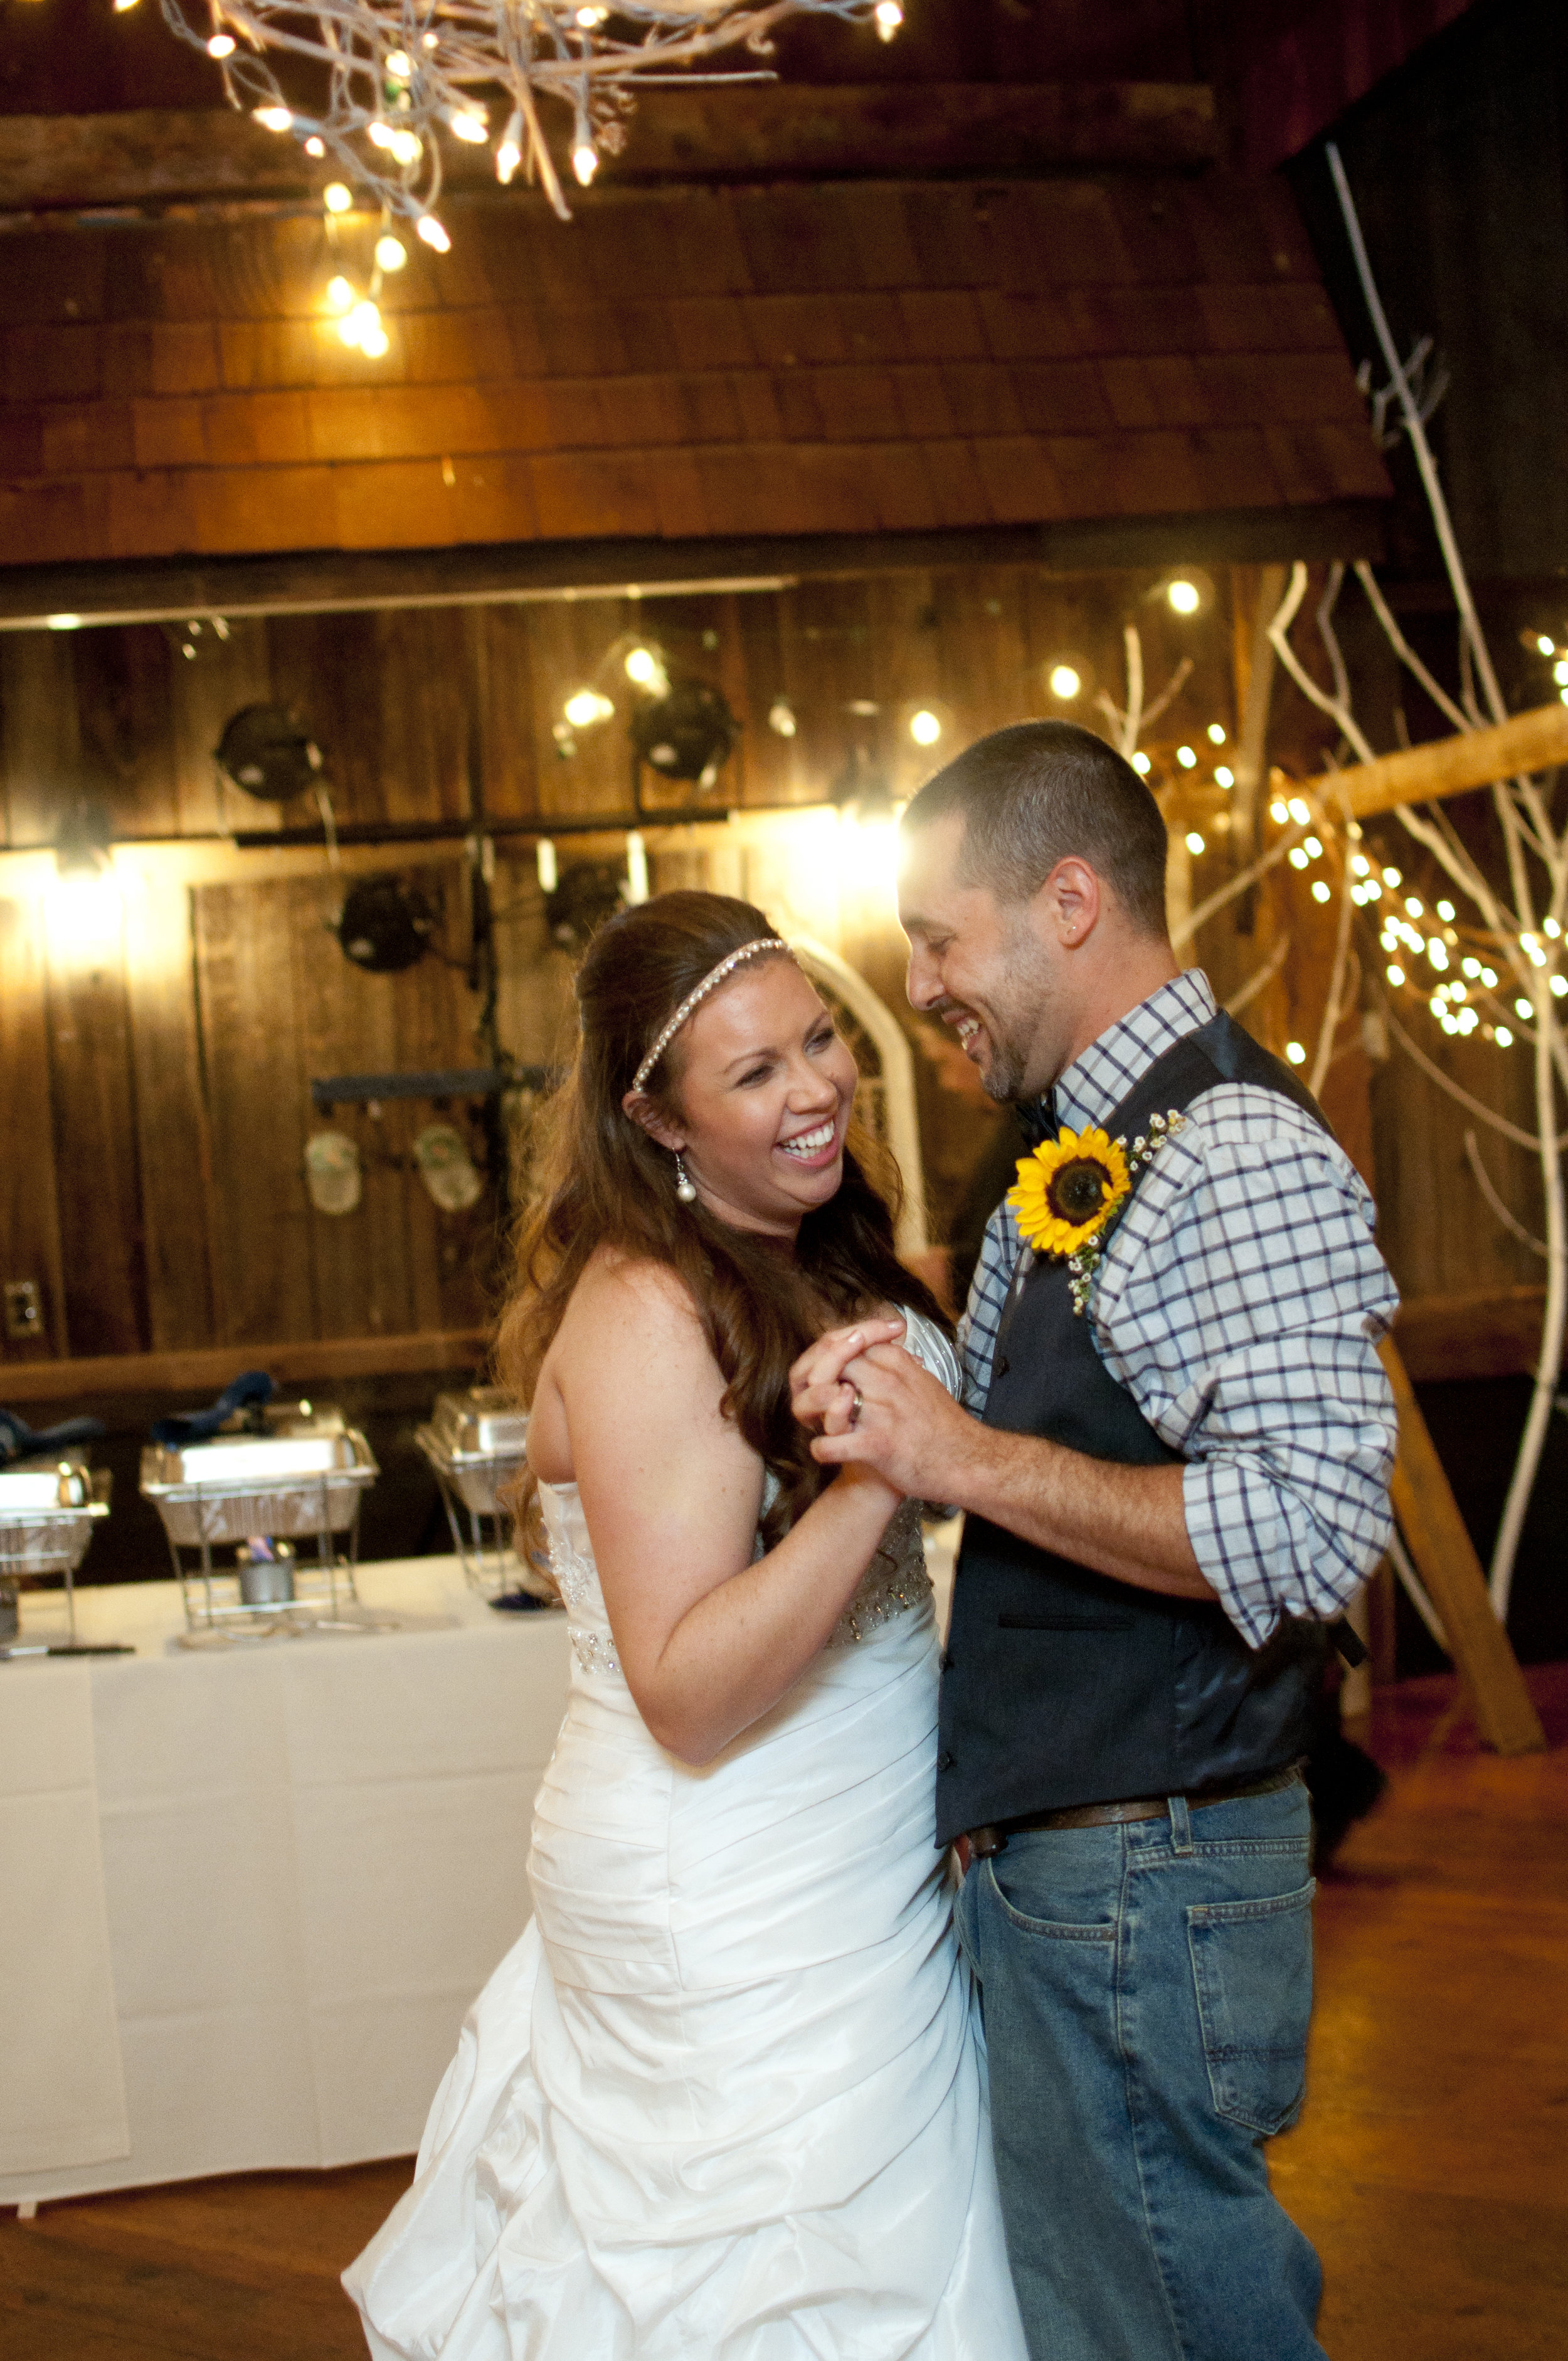 Bride and groom sharing first dance in barn wedding venue La Ferme Rouge in Patton PA